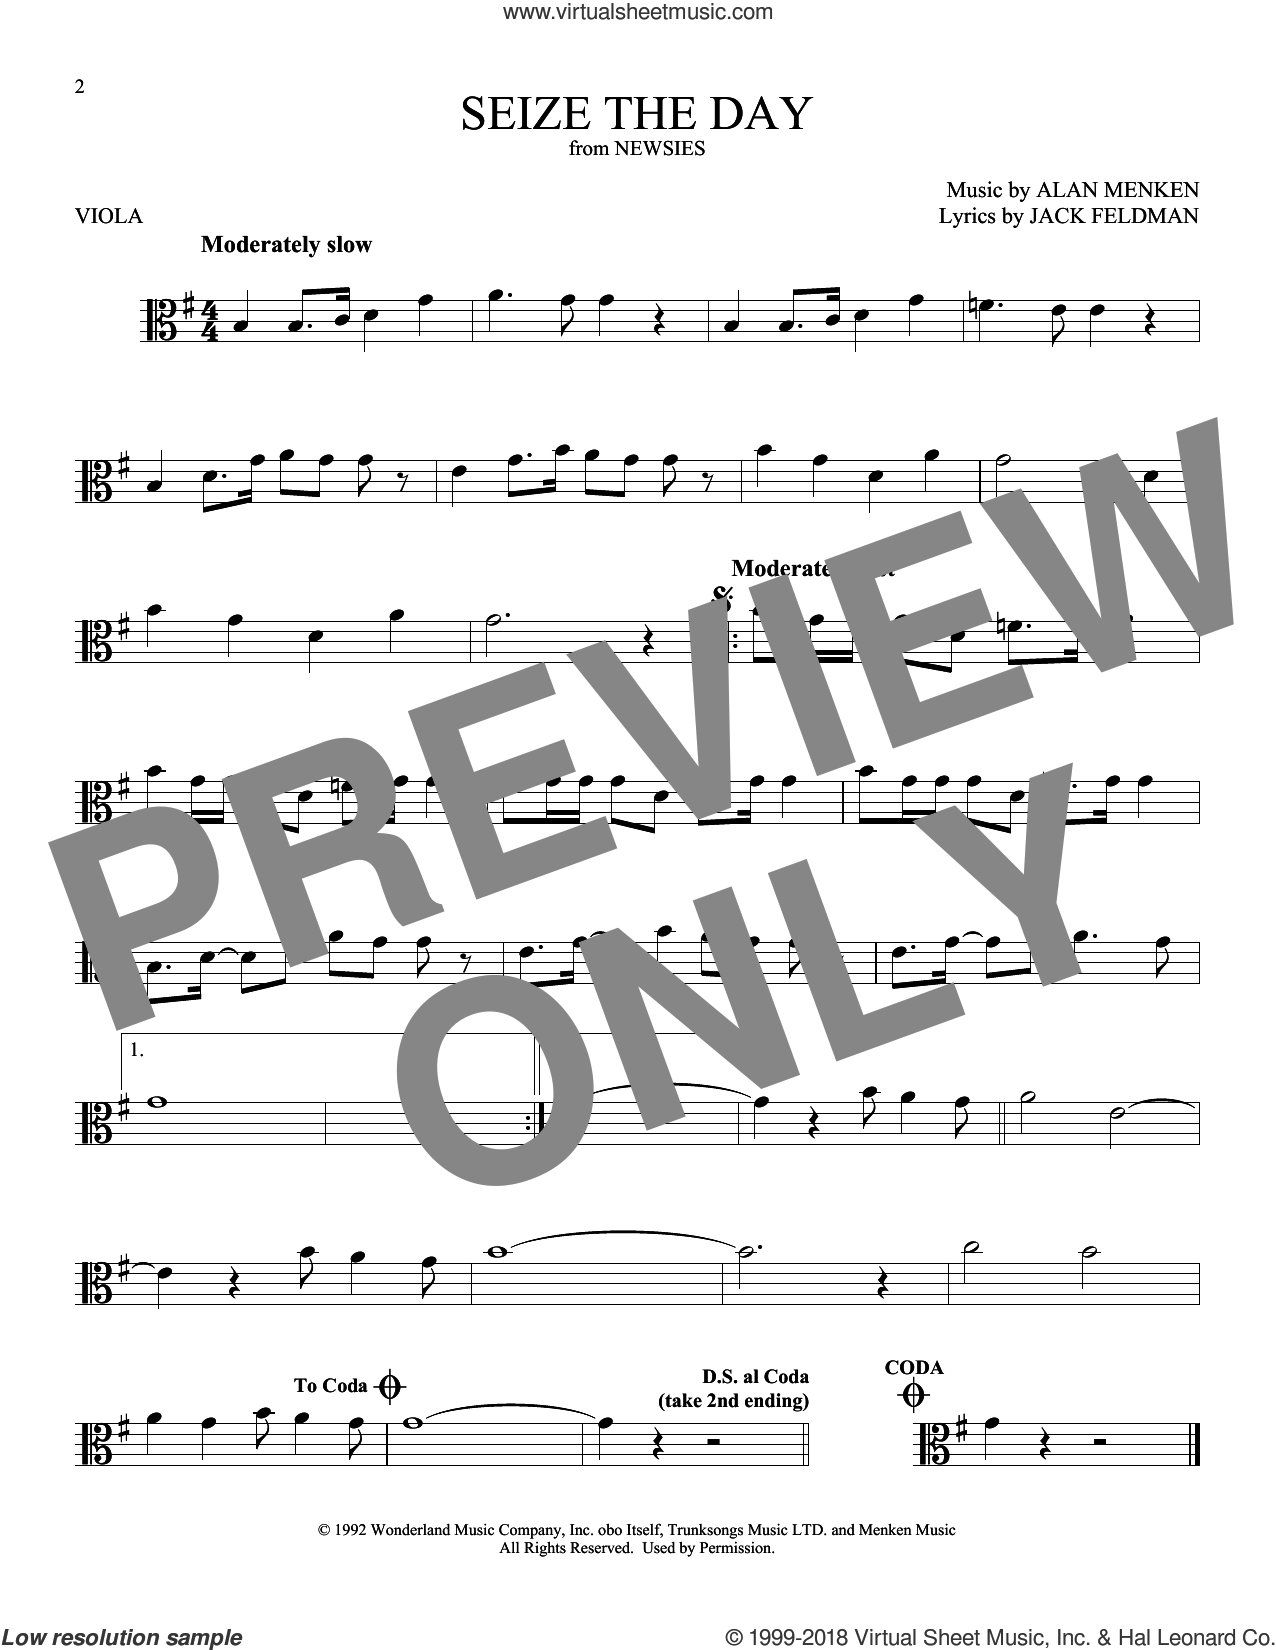 Seize The Day (from Newsies) sheet music for viola solo by Alan Menken and Jack Feldman, intermediate skill level